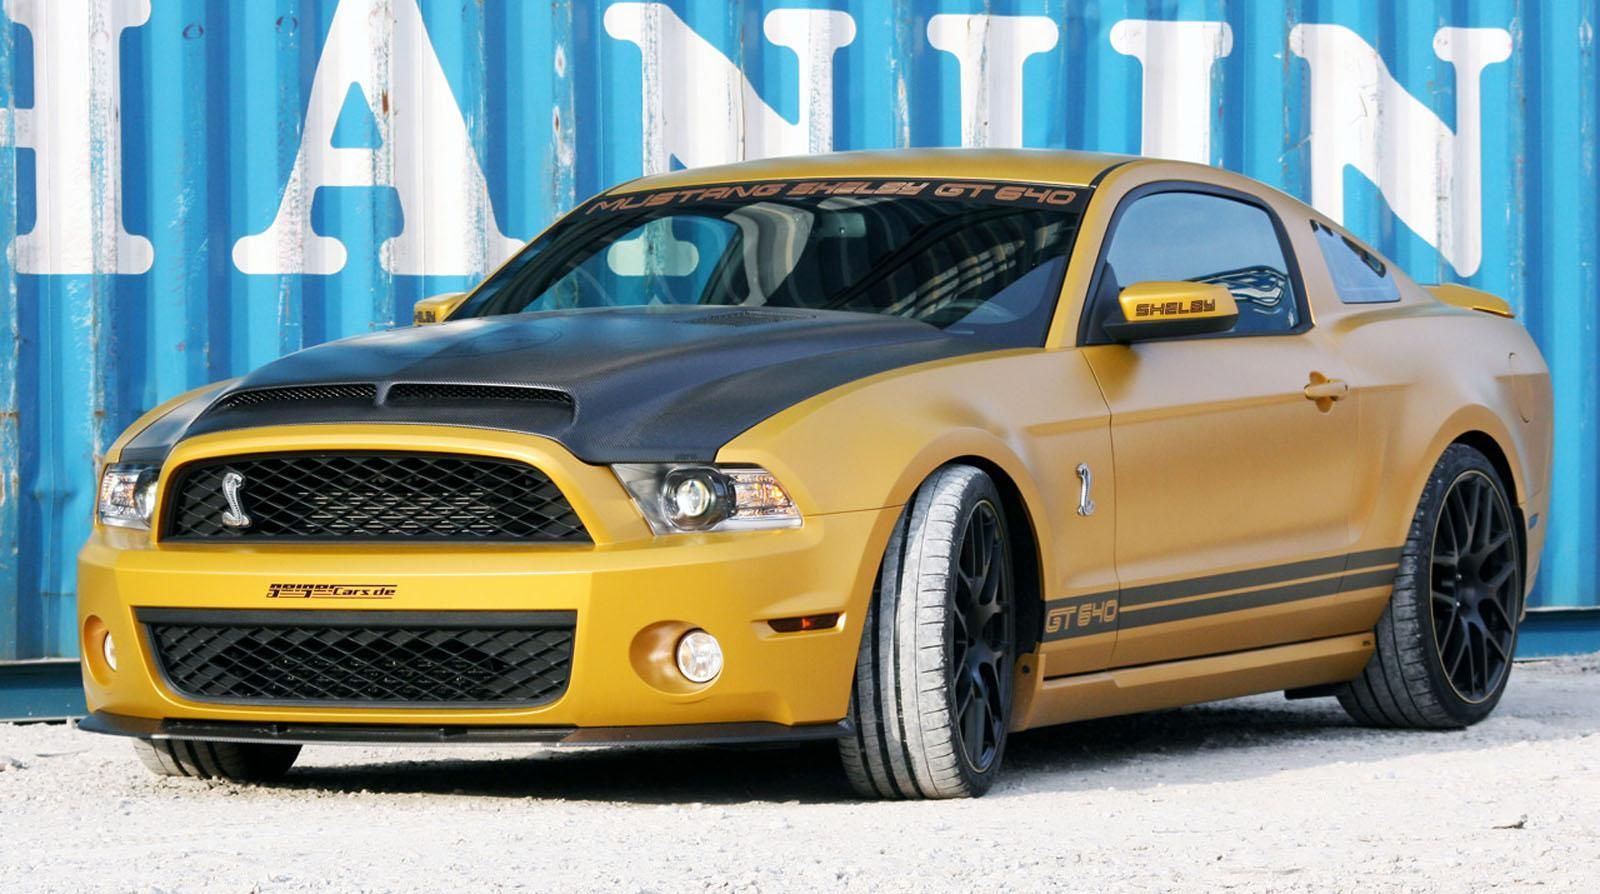 Ford mustang shelby gt 640 golden snake by geigerford